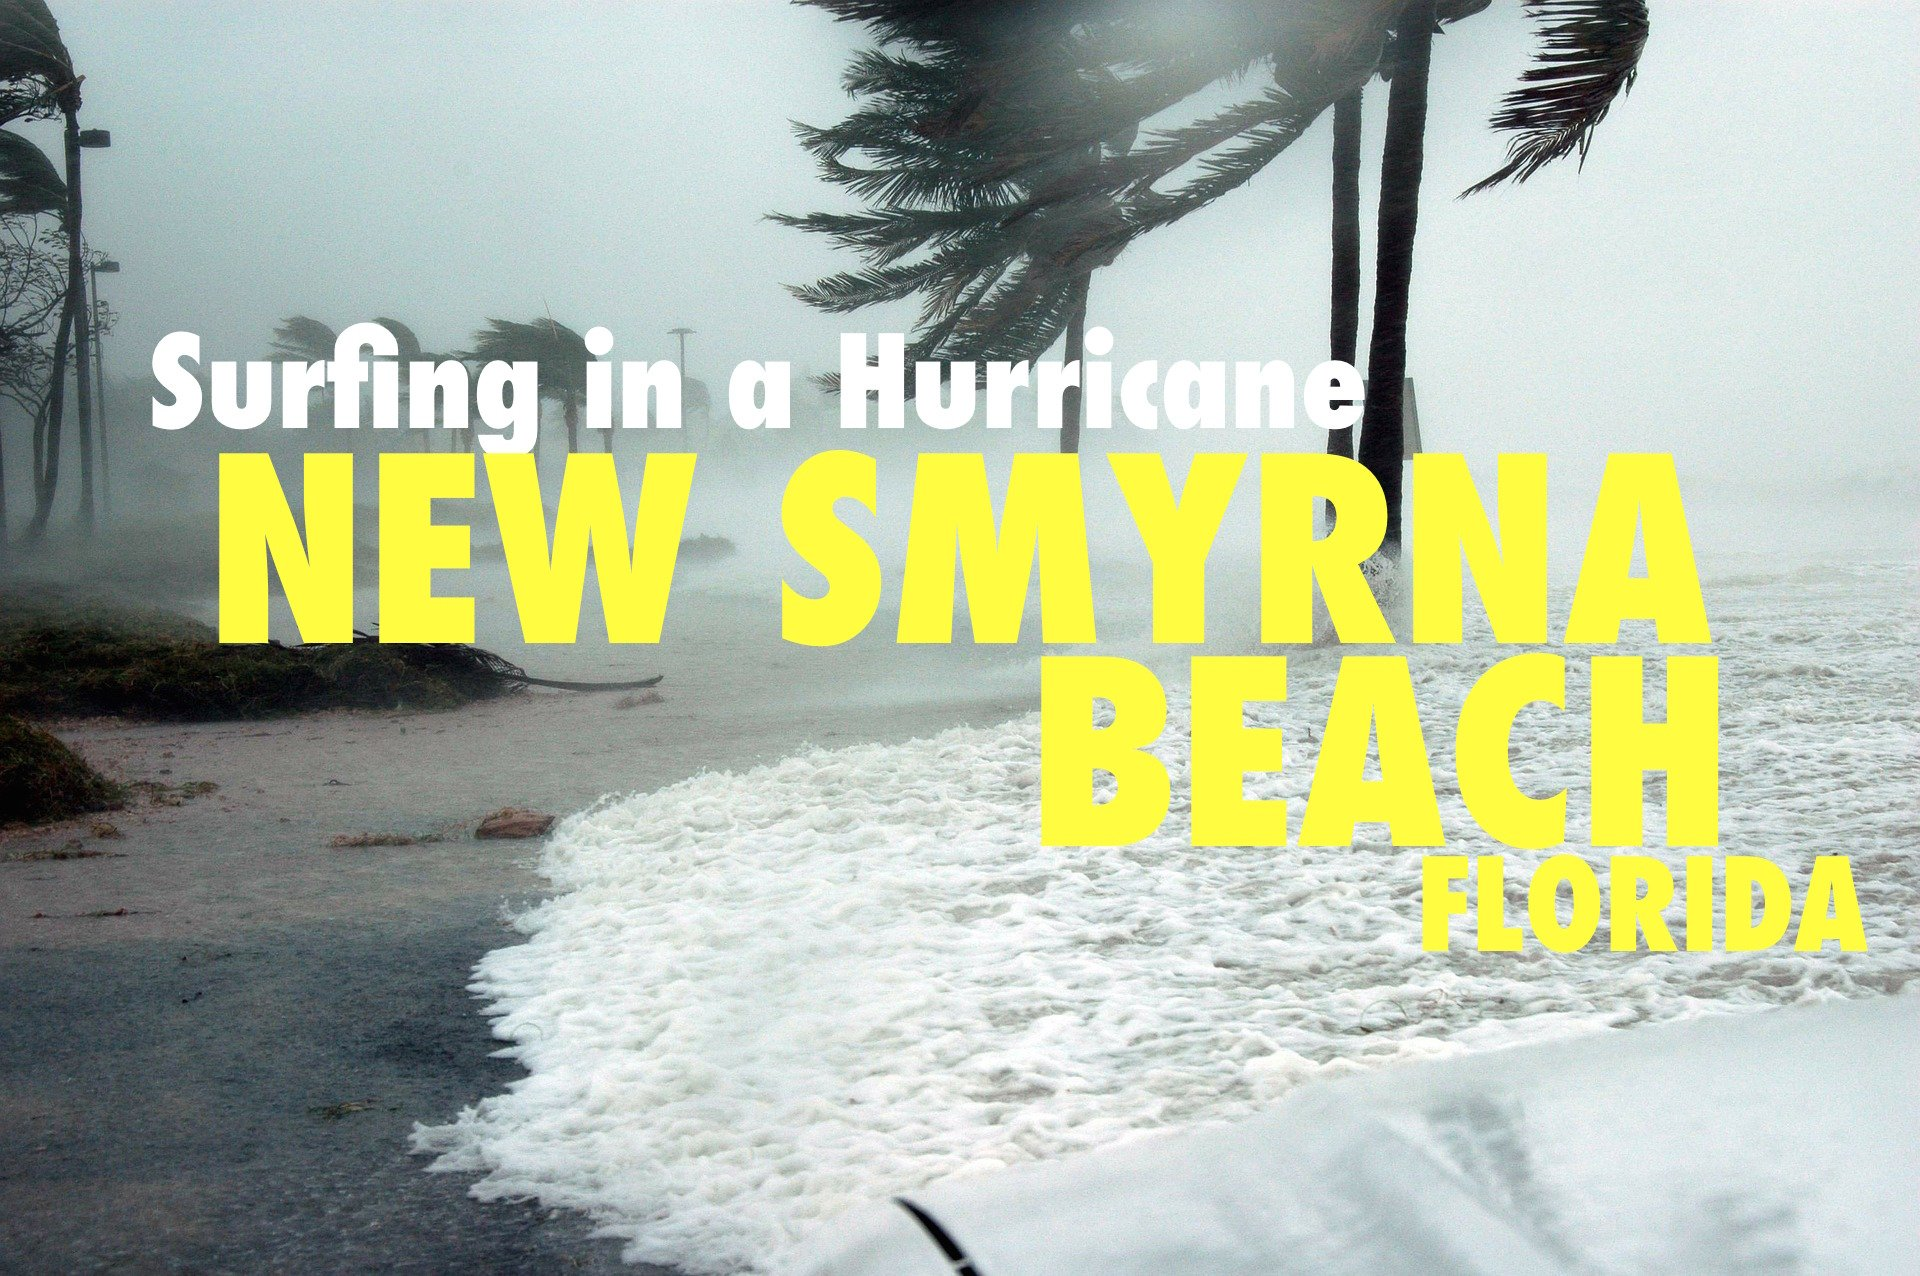 Surfing in a Hurricane New Smyrna Beach Florida